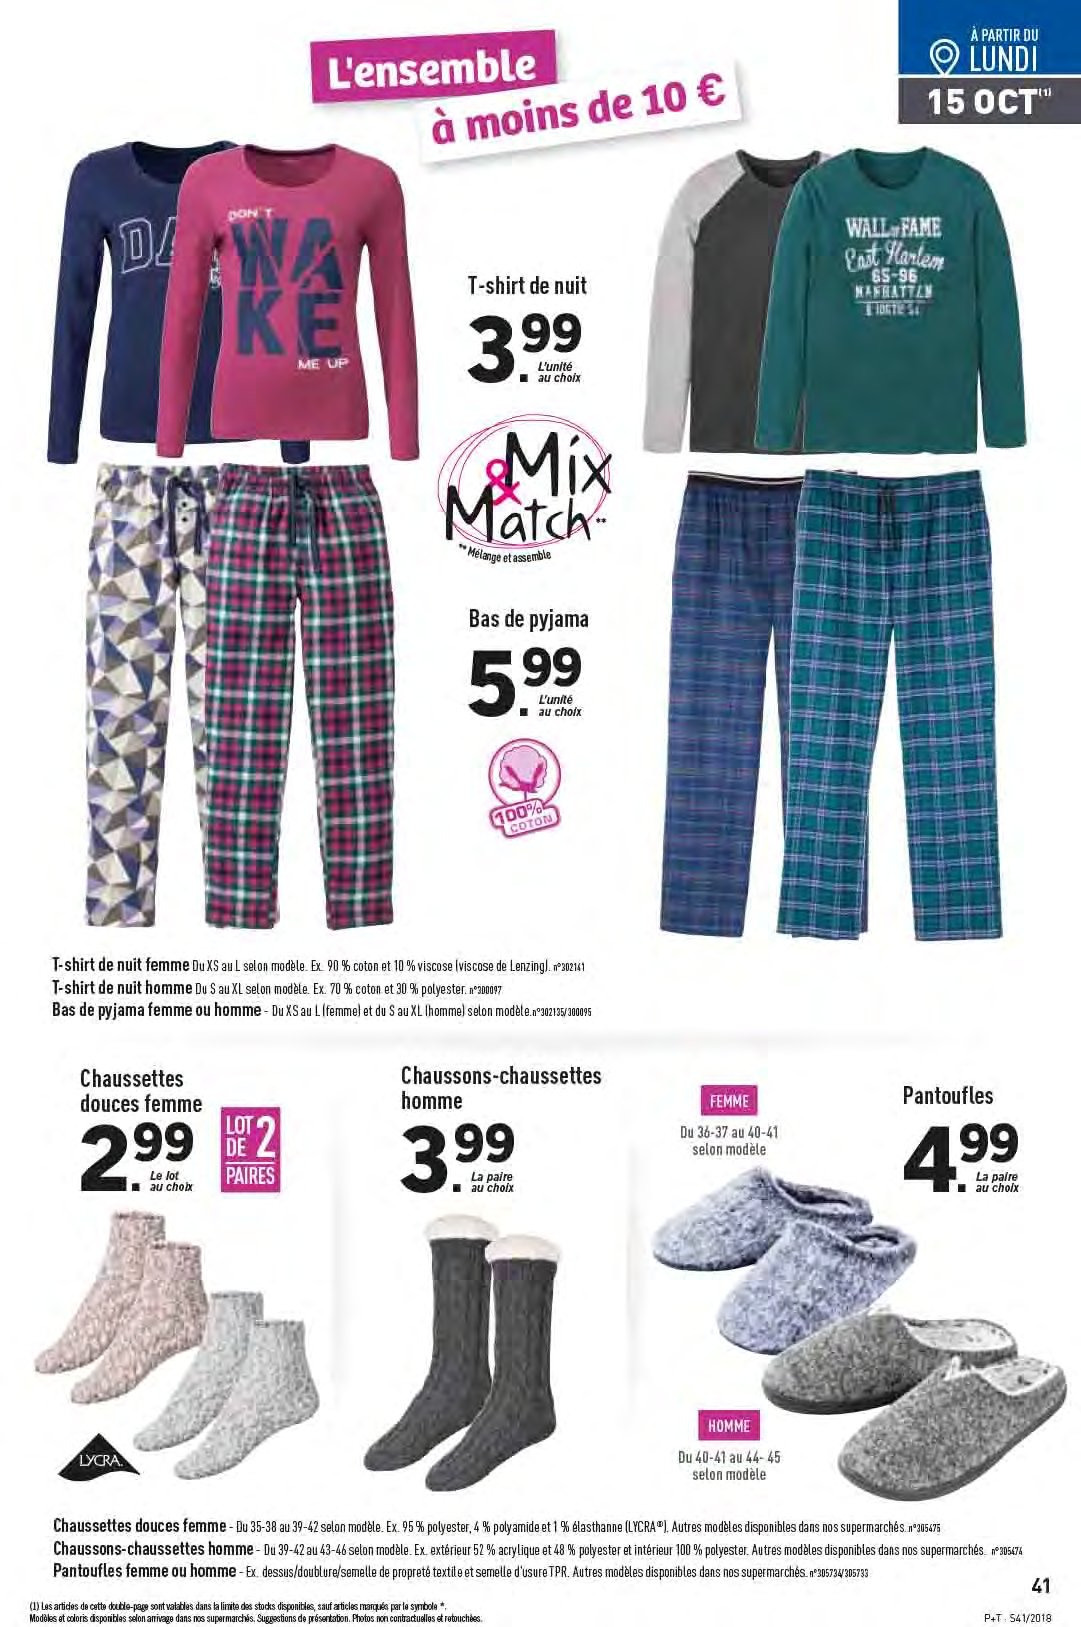 Catalogue Lidl - 10.10.2018 - 16.10.2018. Page 41.